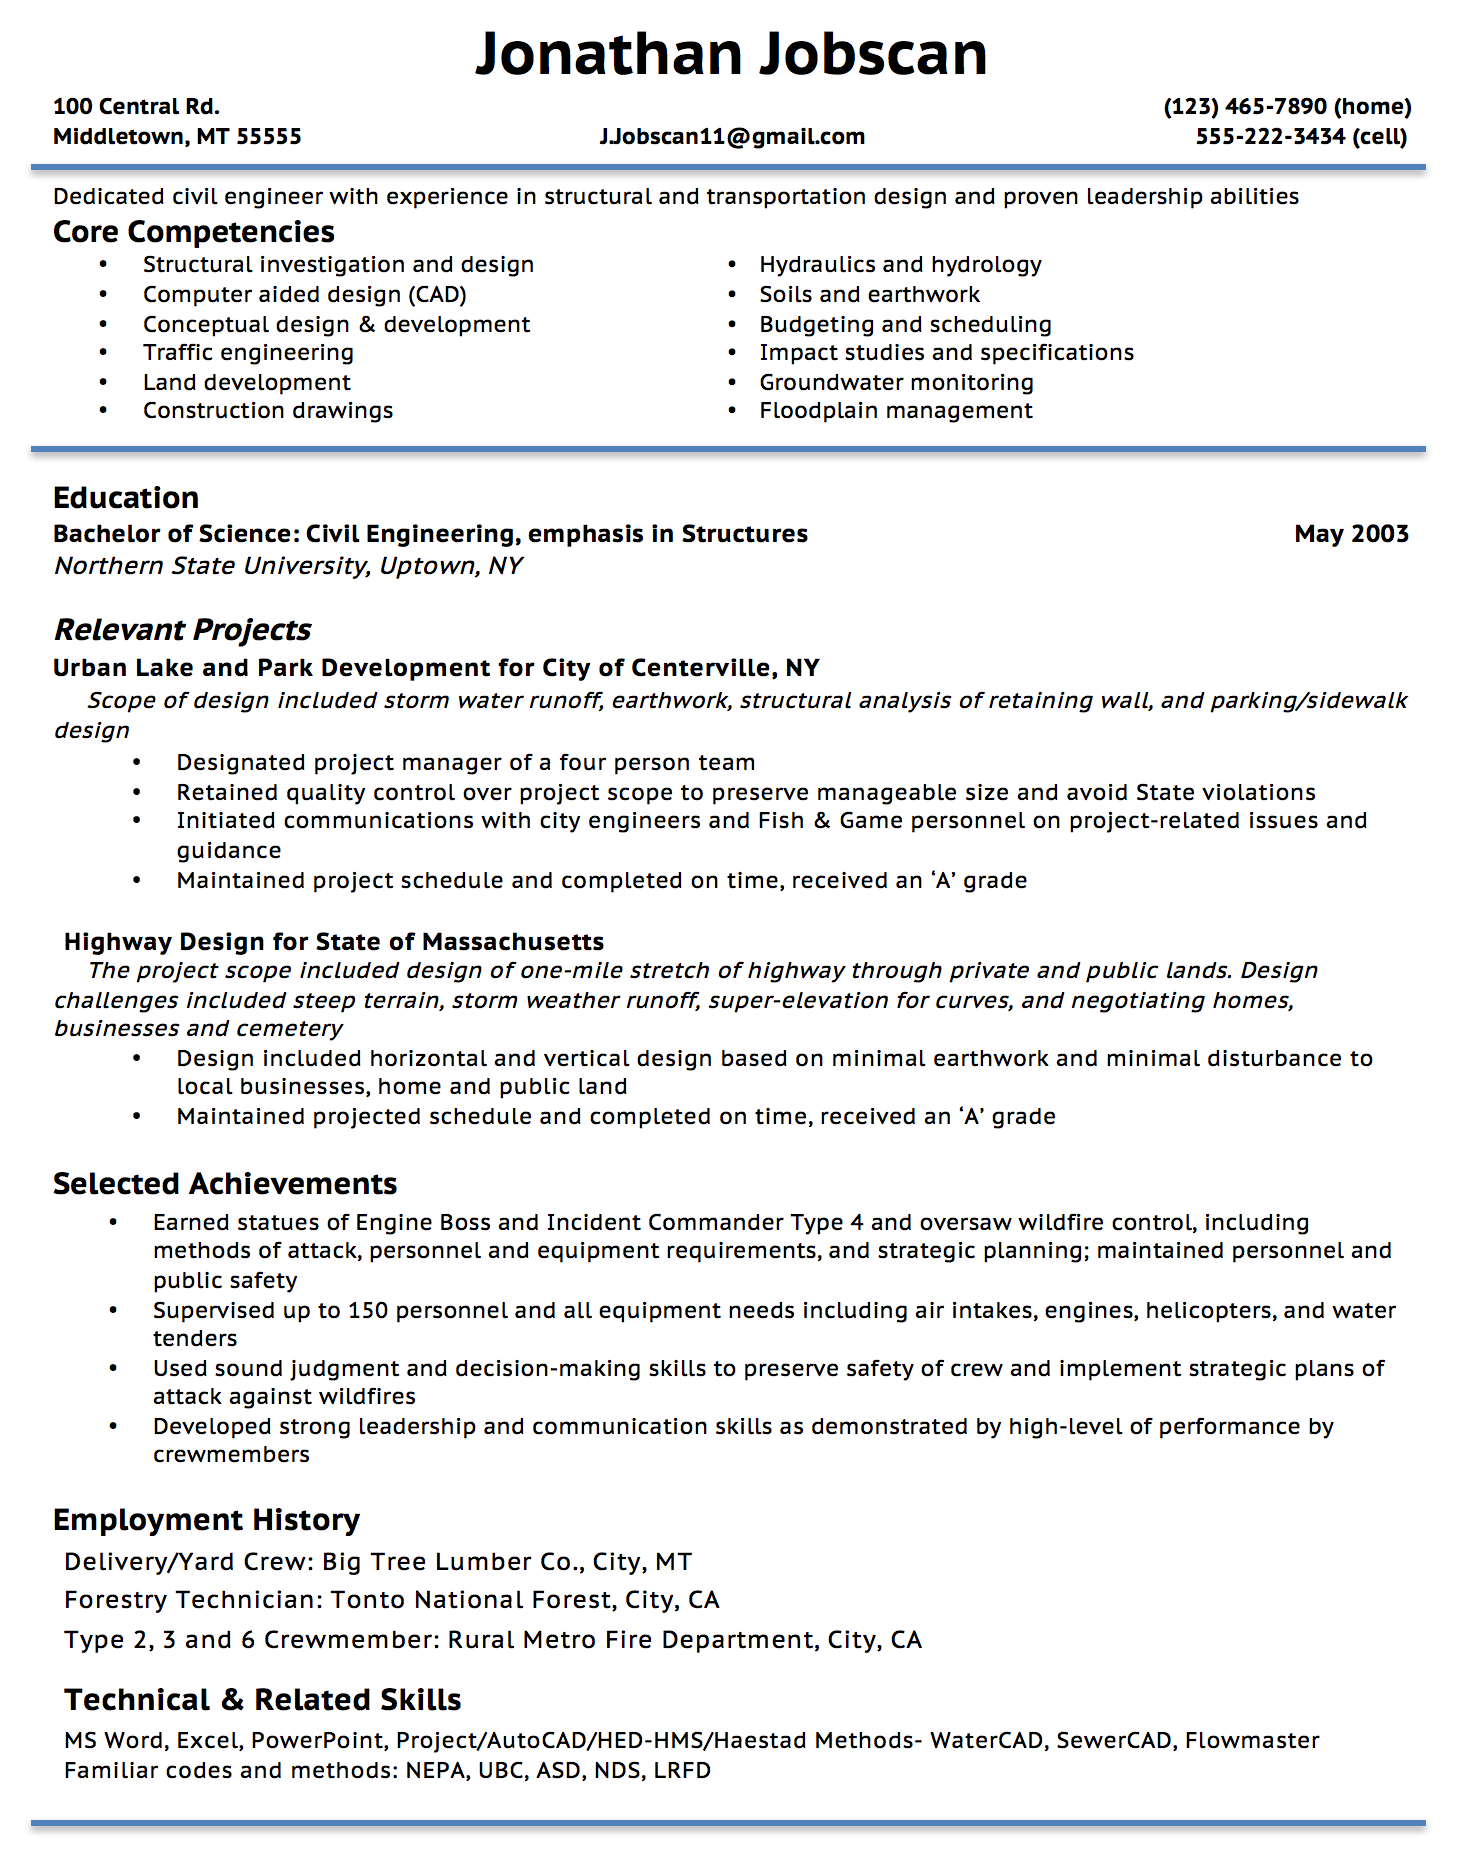 Opposenewapstandardsus  Marvelous Resume Writing Guide  Jobscan With Outstanding Example Of A Functional Resume Format With Nice Free Microsoft Word Resume Templates Also Creative Resume Template In Addition Senior Accountant Resume And Resume Cheat Sheet As Well As Funny Resumes Additionally Reference Sheet For Resume From Jobscanco With Opposenewapstandardsus  Outstanding Resume Writing Guide  Jobscan With Nice Example Of A Functional Resume Format And Marvelous Free Microsoft Word Resume Templates Also Creative Resume Template In Addition Senior Accountant Resume From Jobscanco